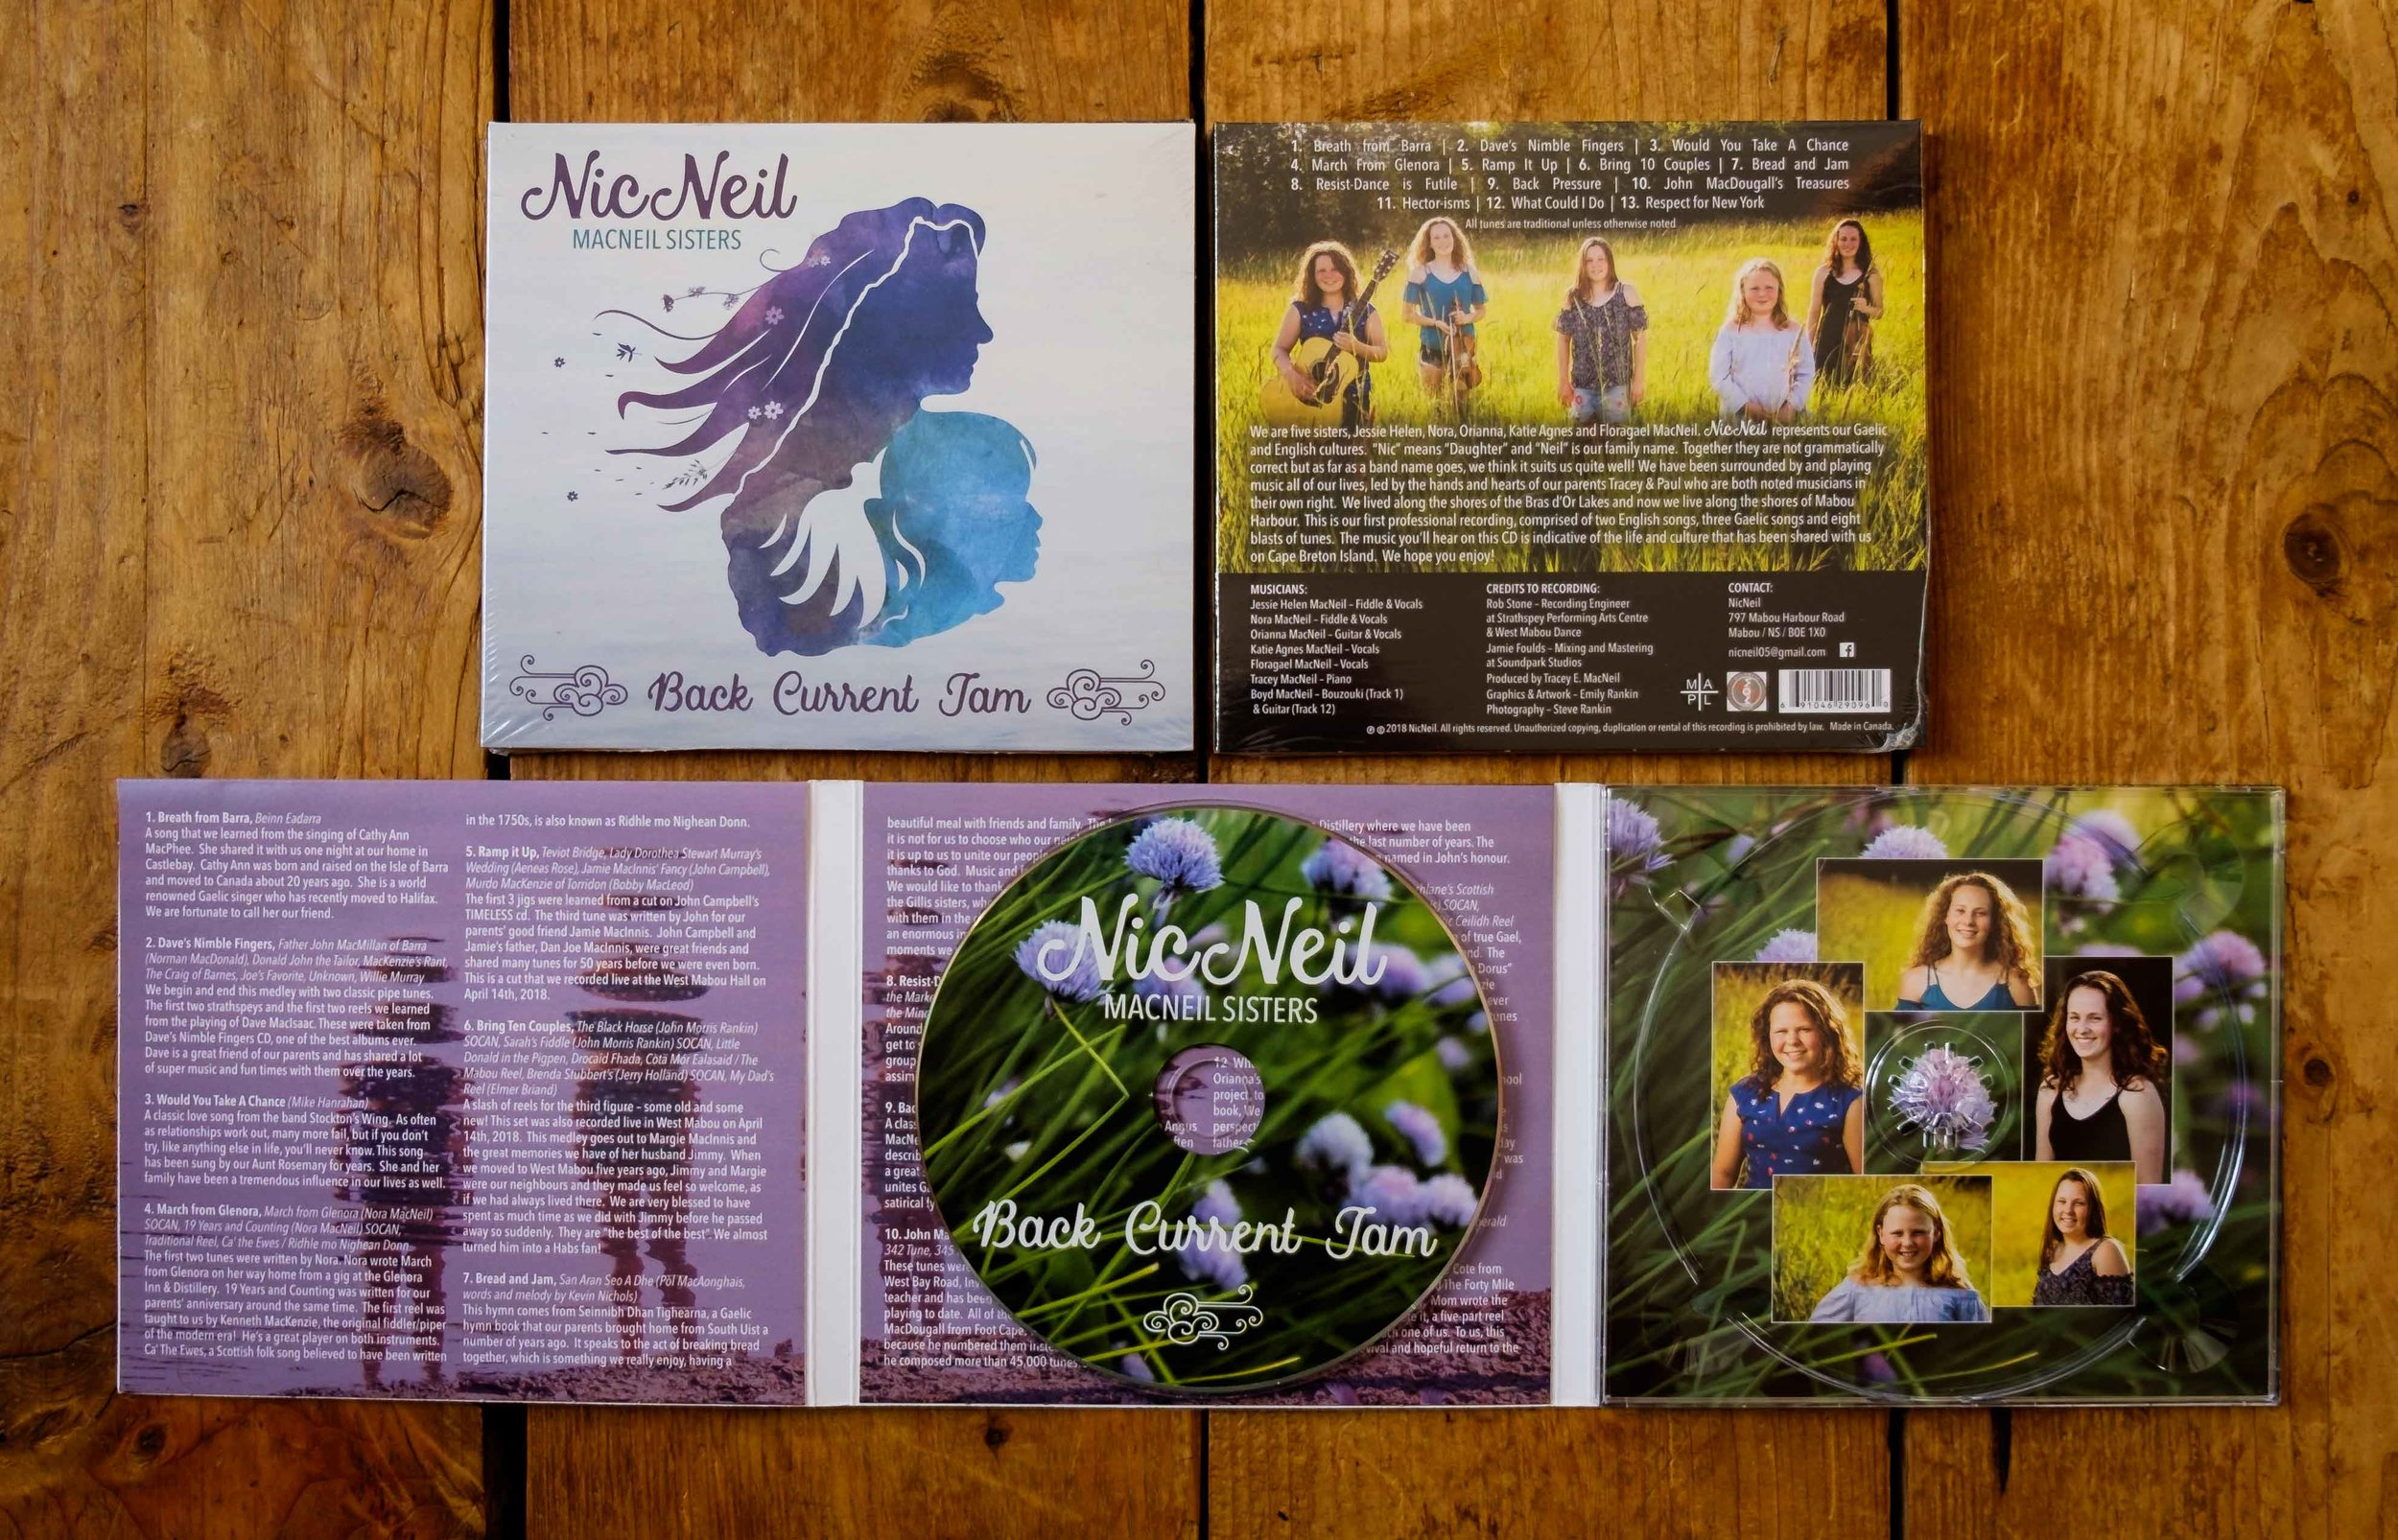 nic-neil-cd-design